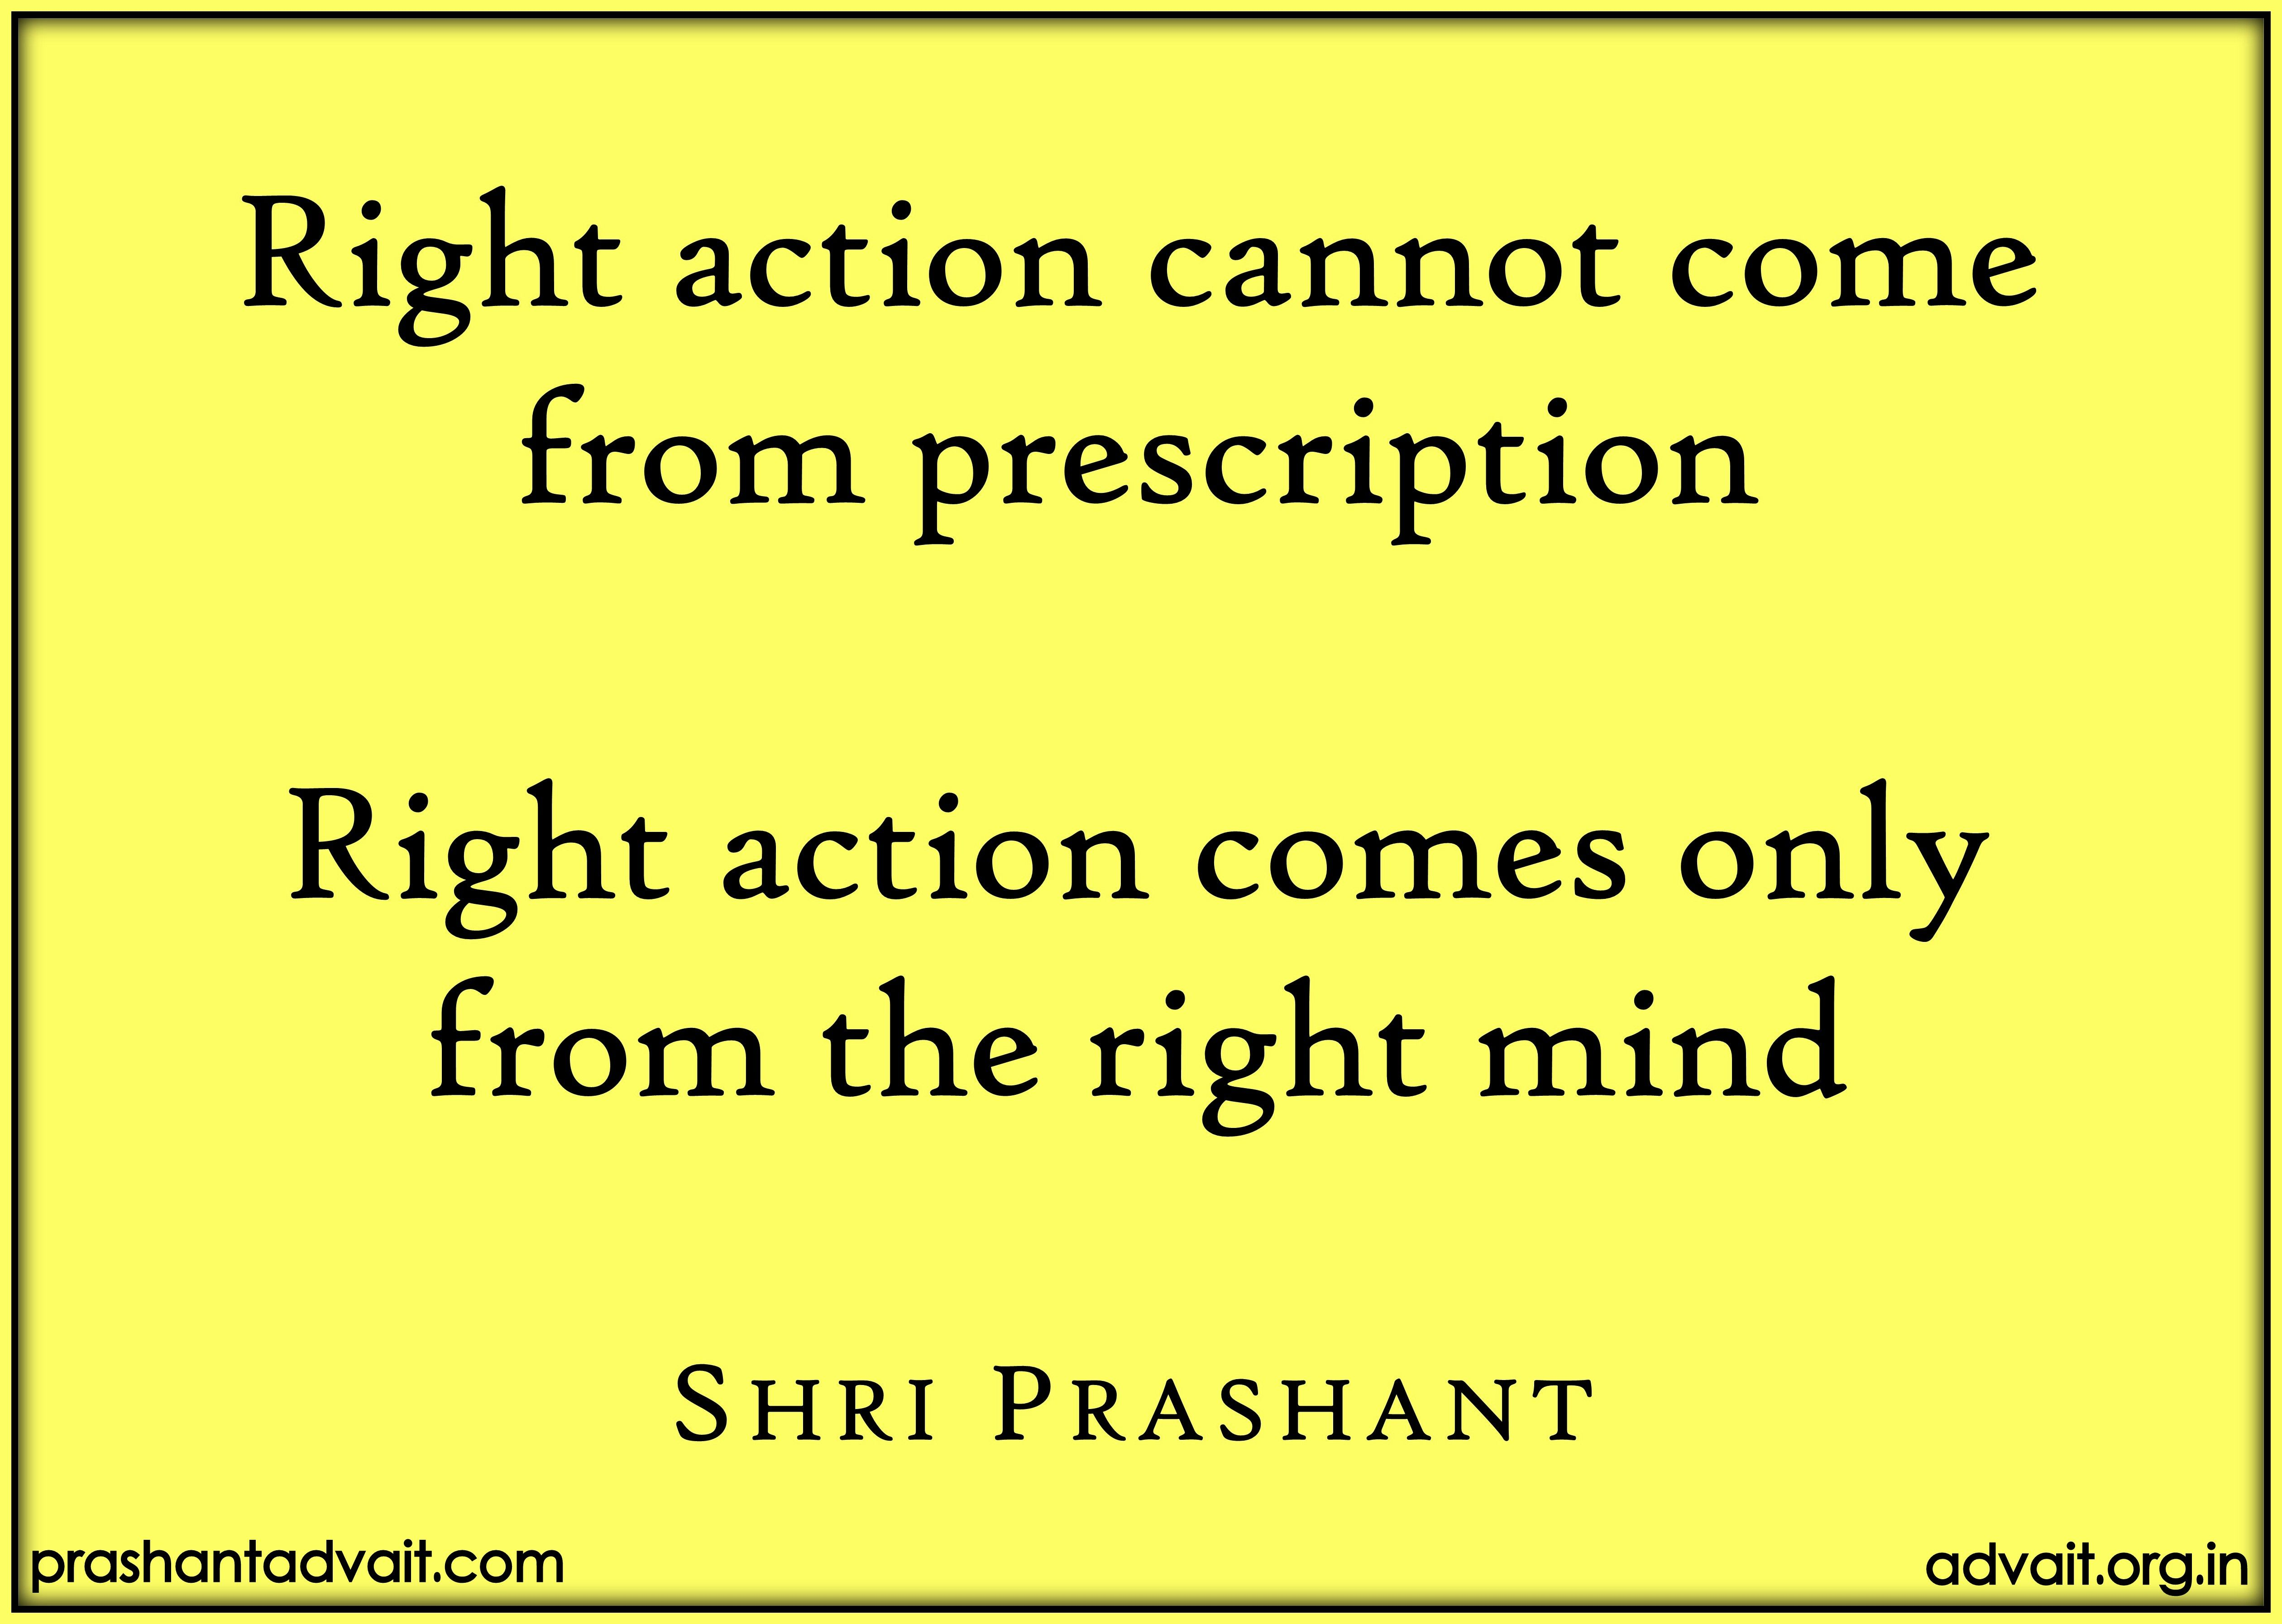 ef0b4f179b Right action cannot come from prescription. Right action comes only from  the right mind.